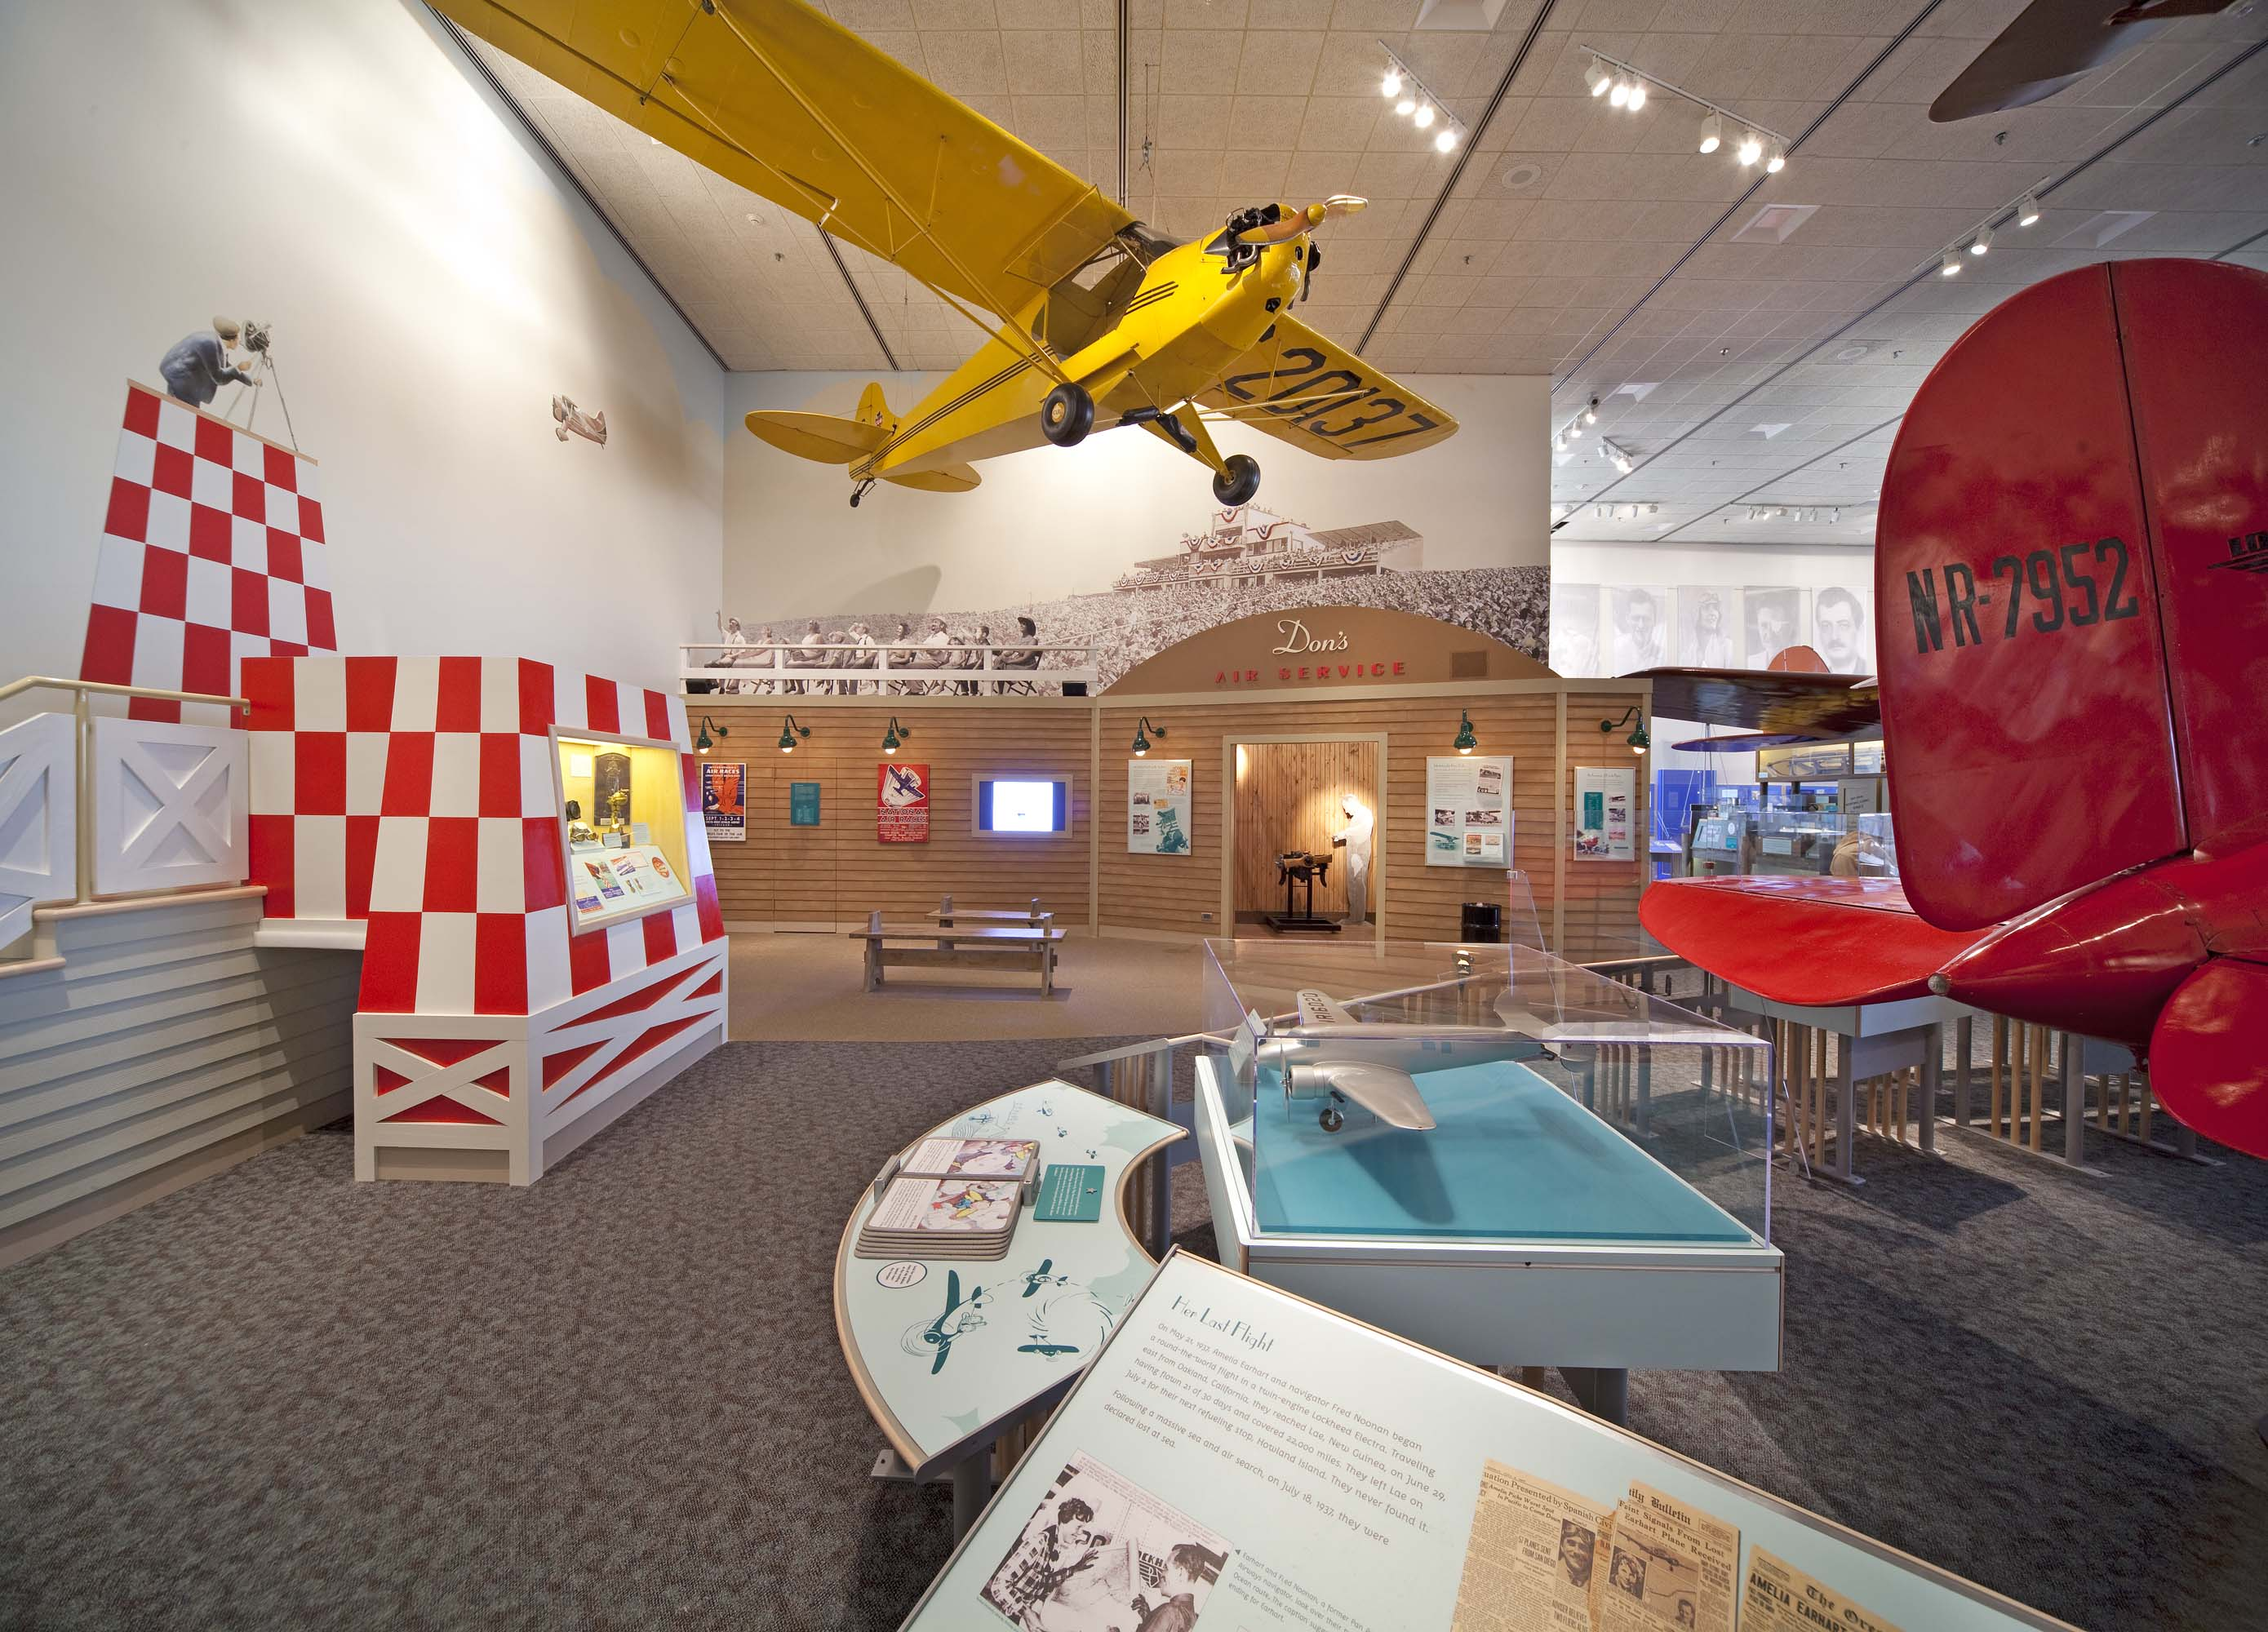 Barron Hilton Pioneers of Flight Gallery - Don's Air Service